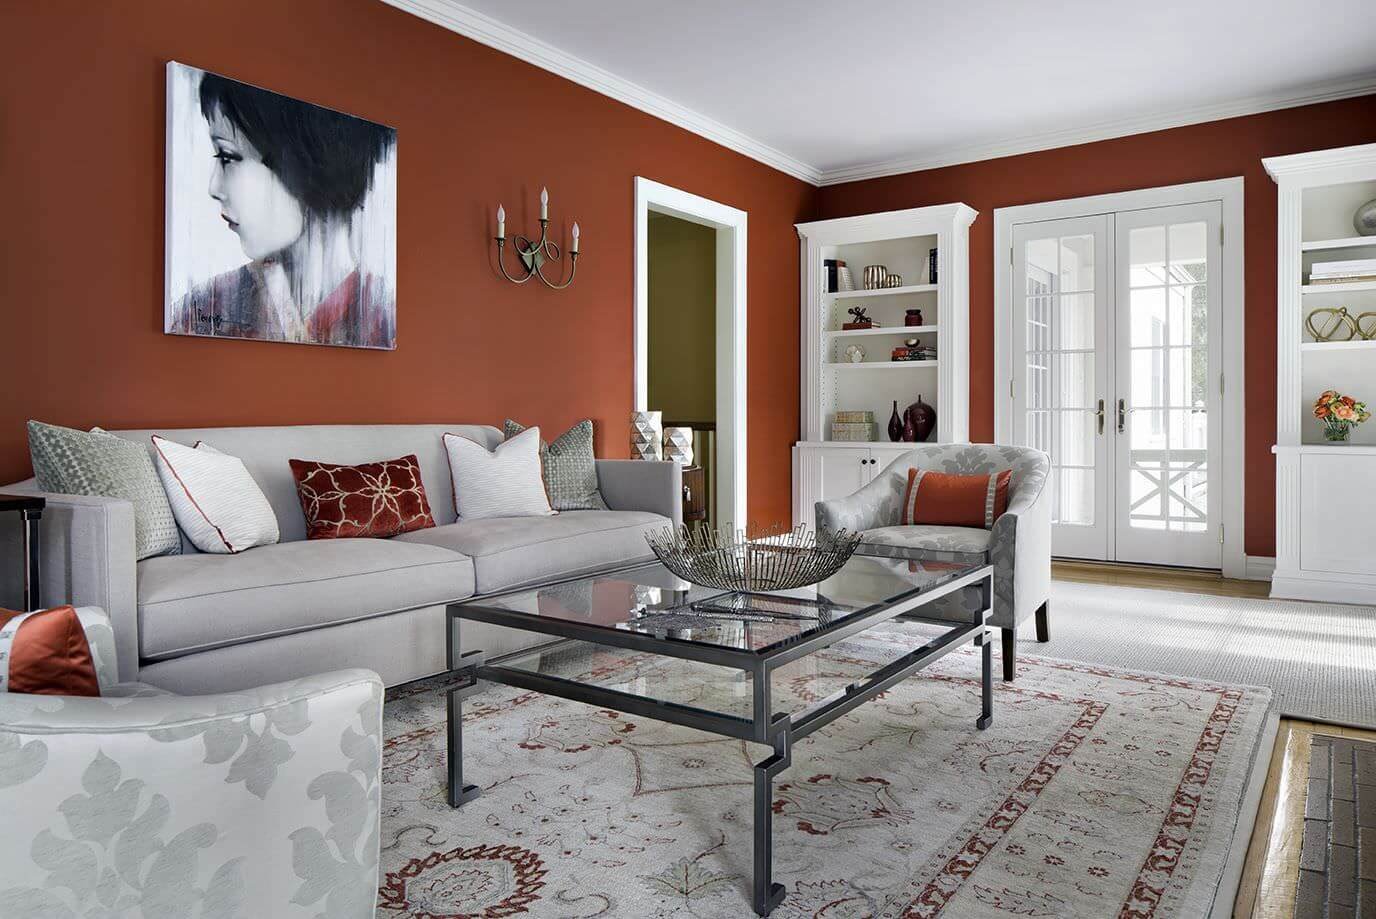 Best Living Room Colors And Color Combinations 2021